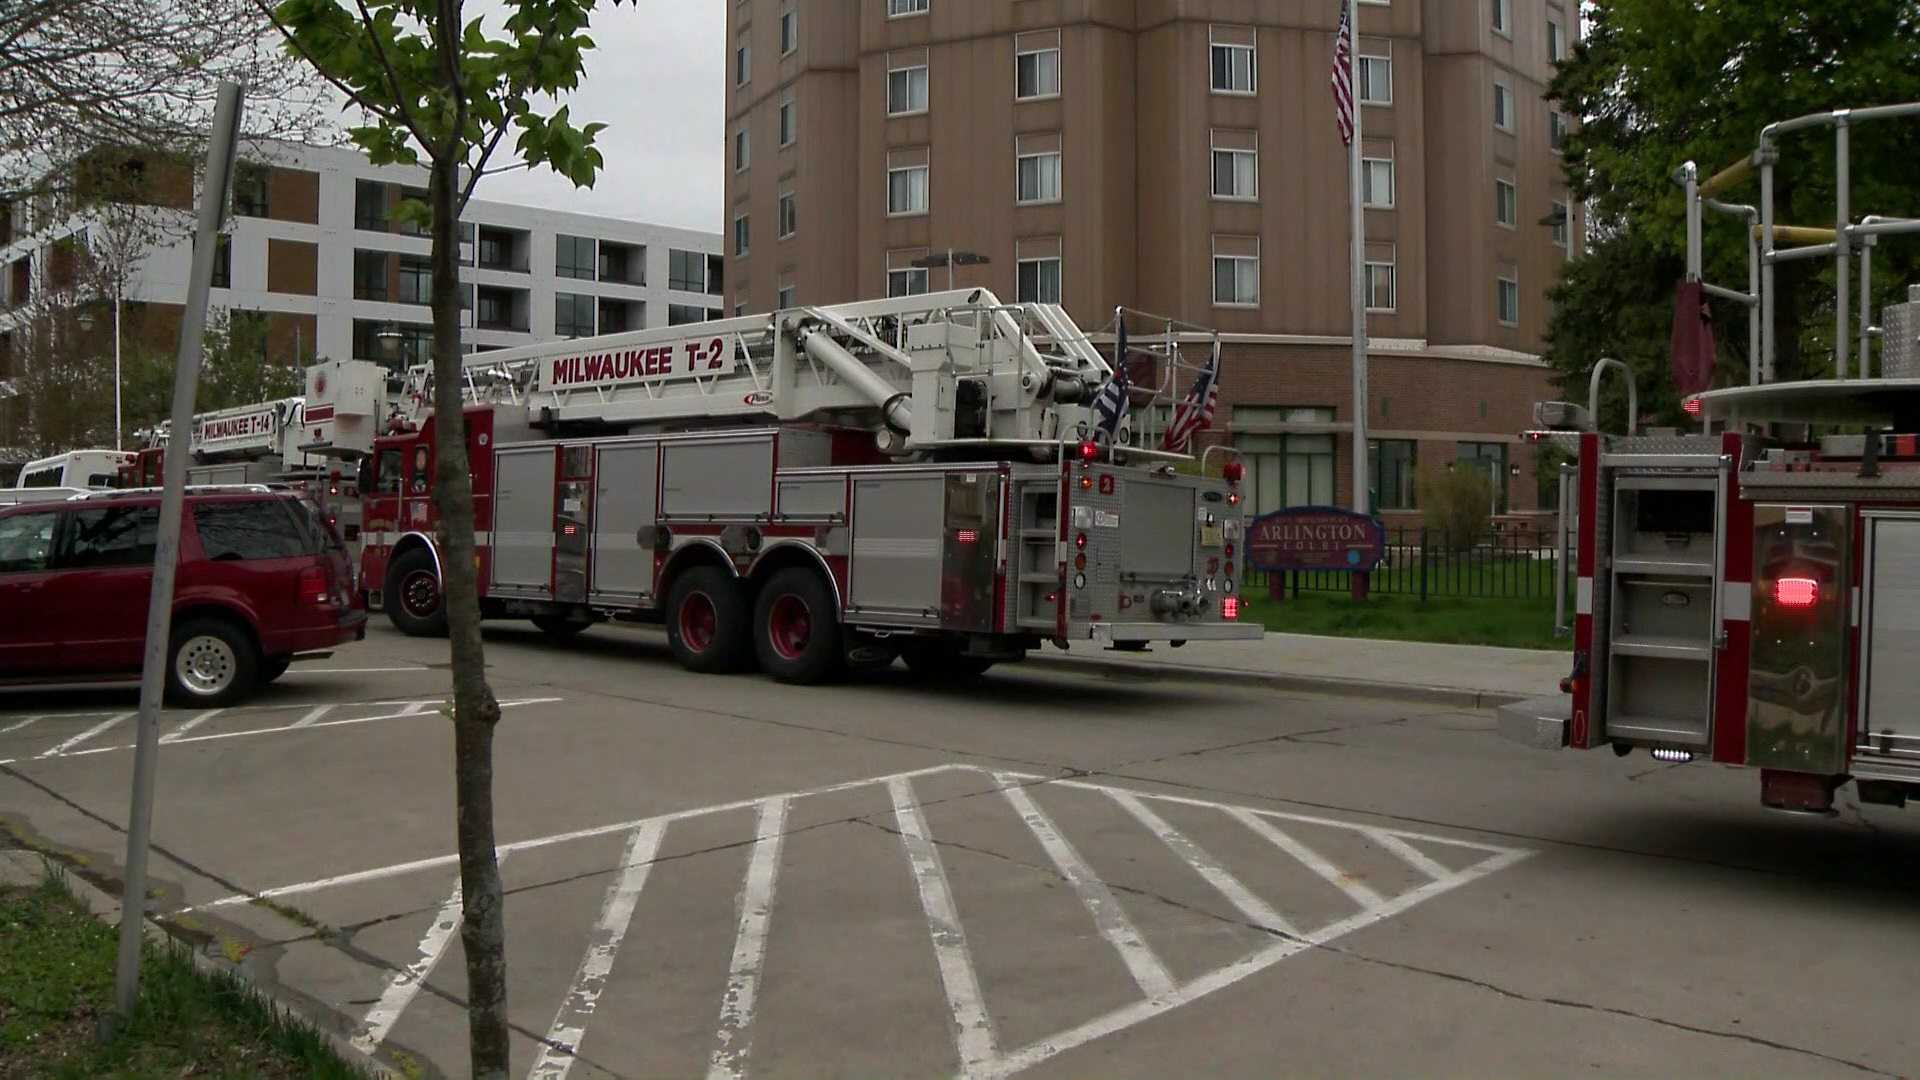 One woman hurt in a high rise fire on Milwaukee's east side